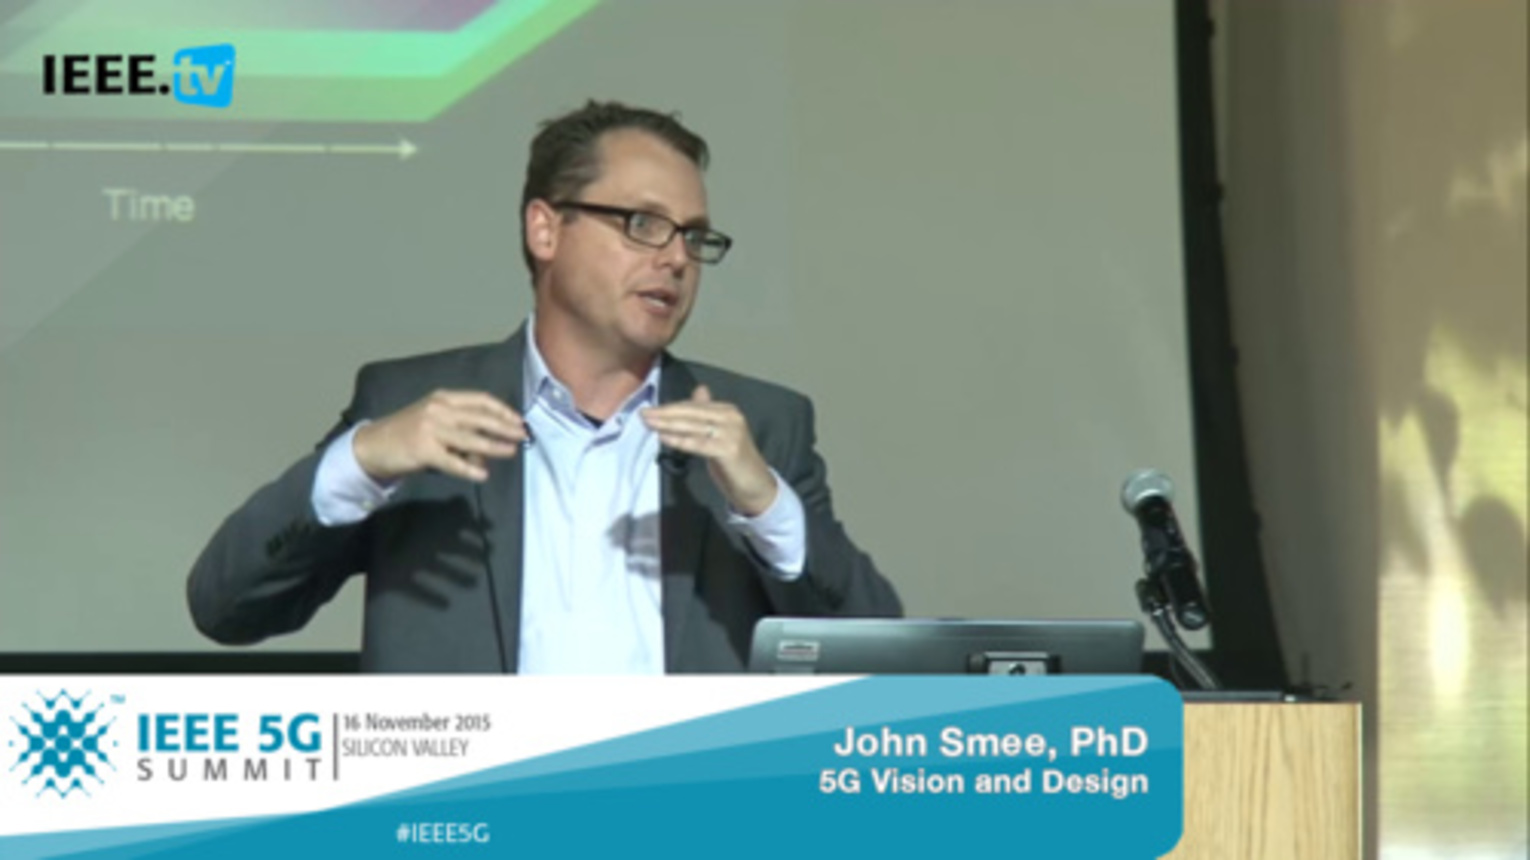 Silicon Valley 5G Summit 2015 - John Smee - 5G Vision and Design